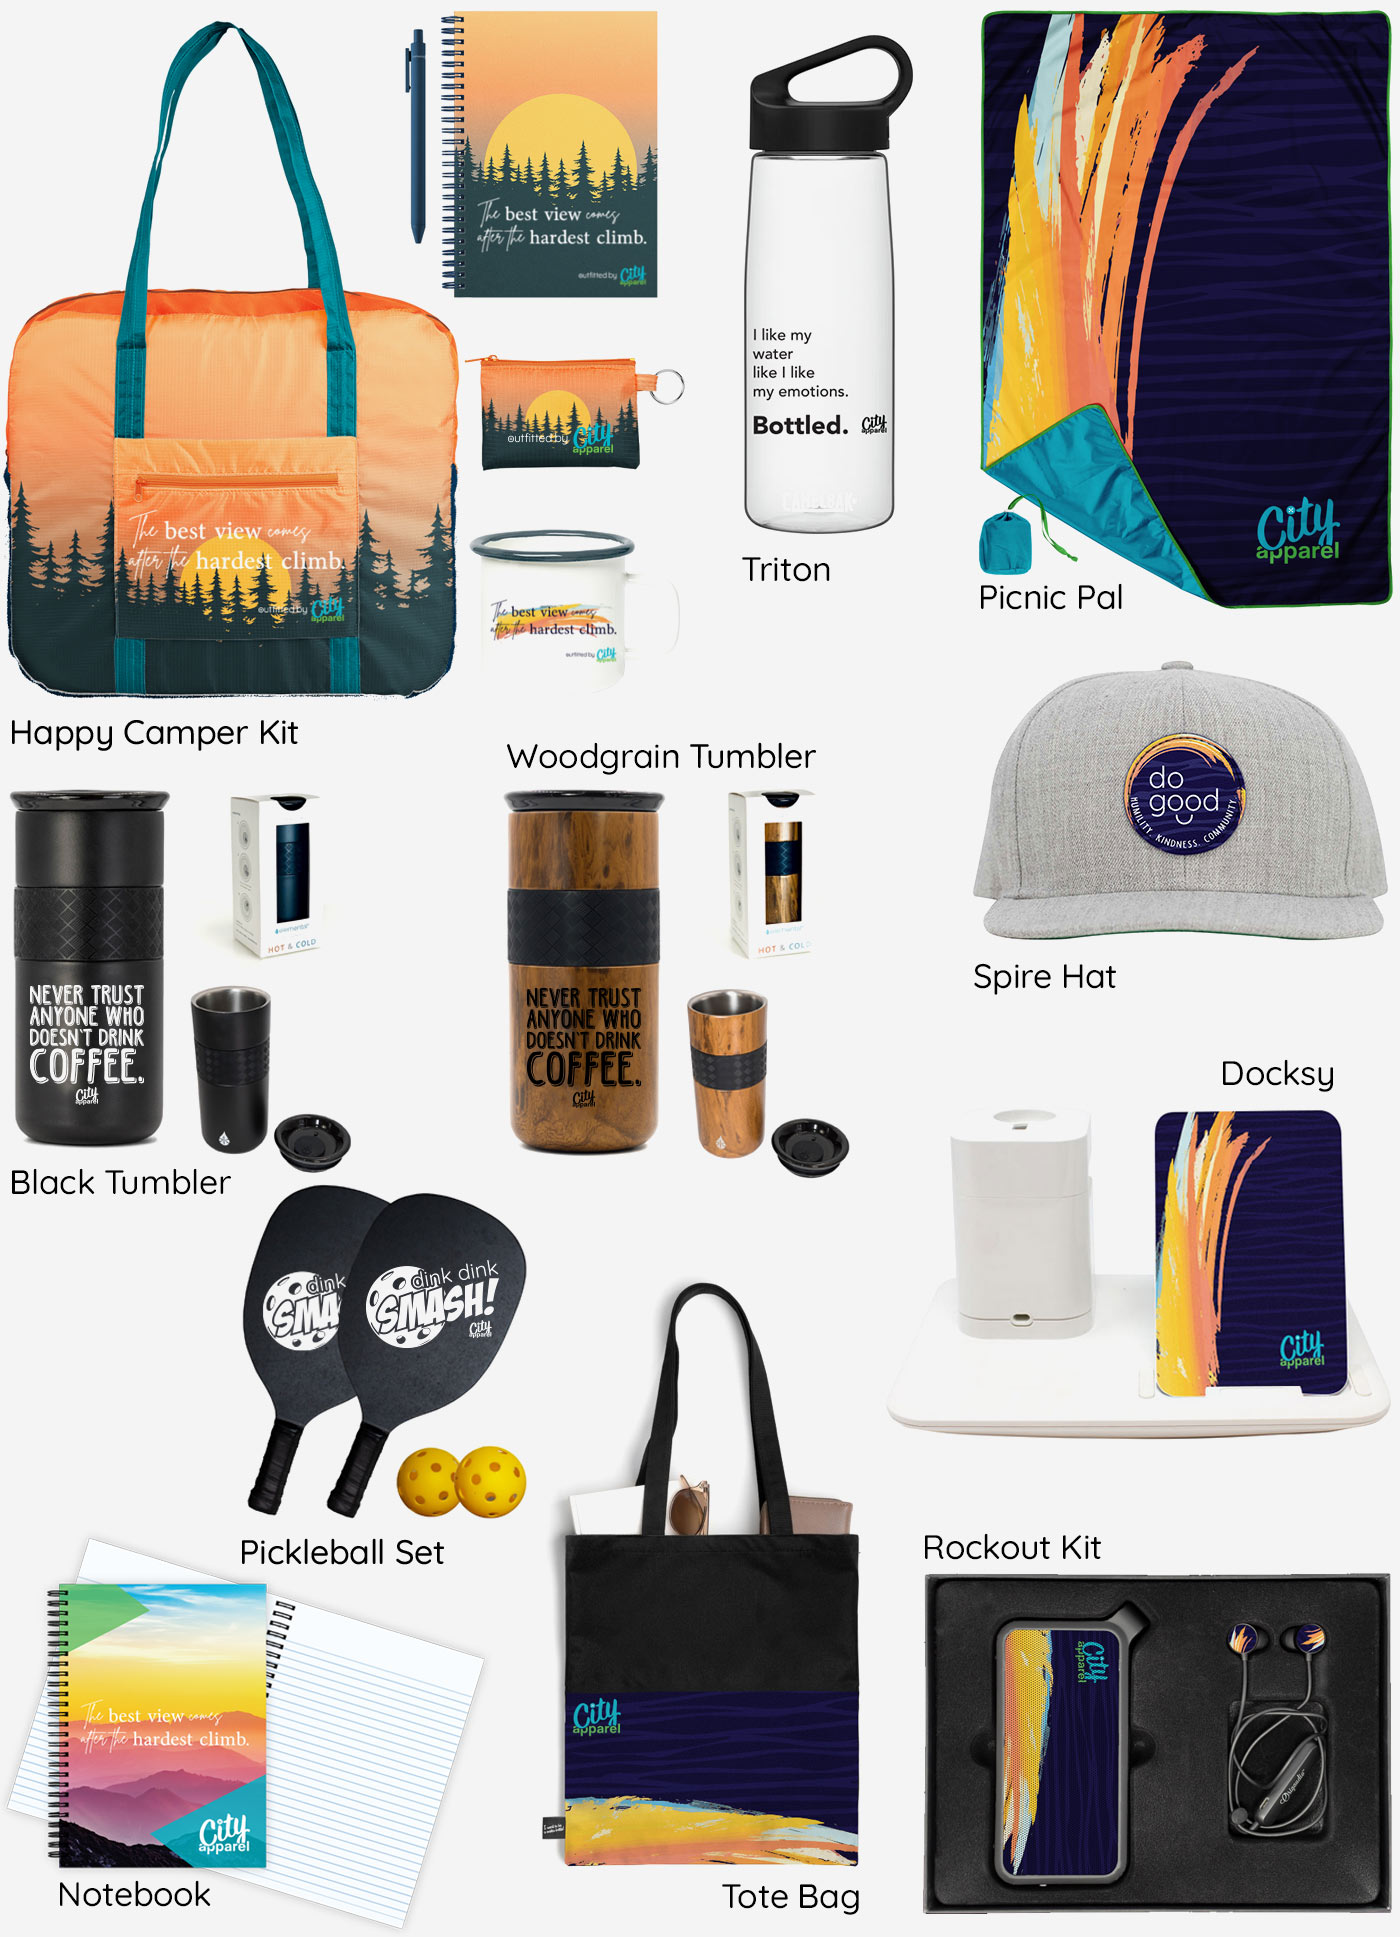 City Apparel gift items